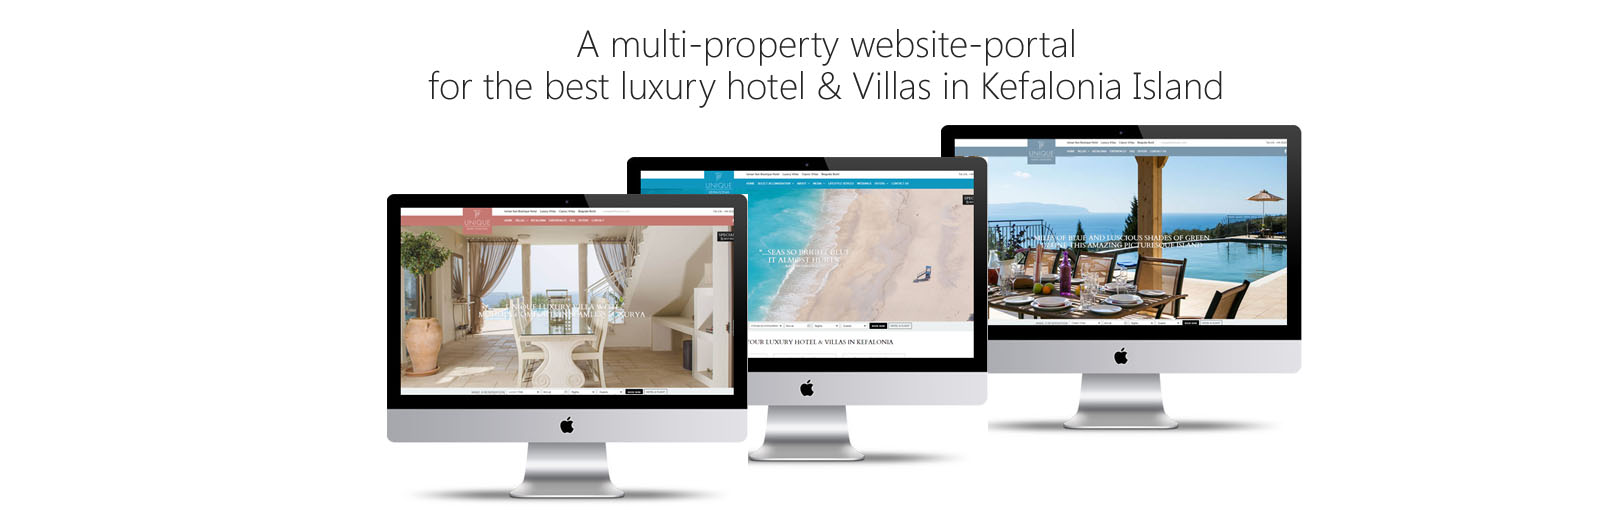 hotel-villas-website